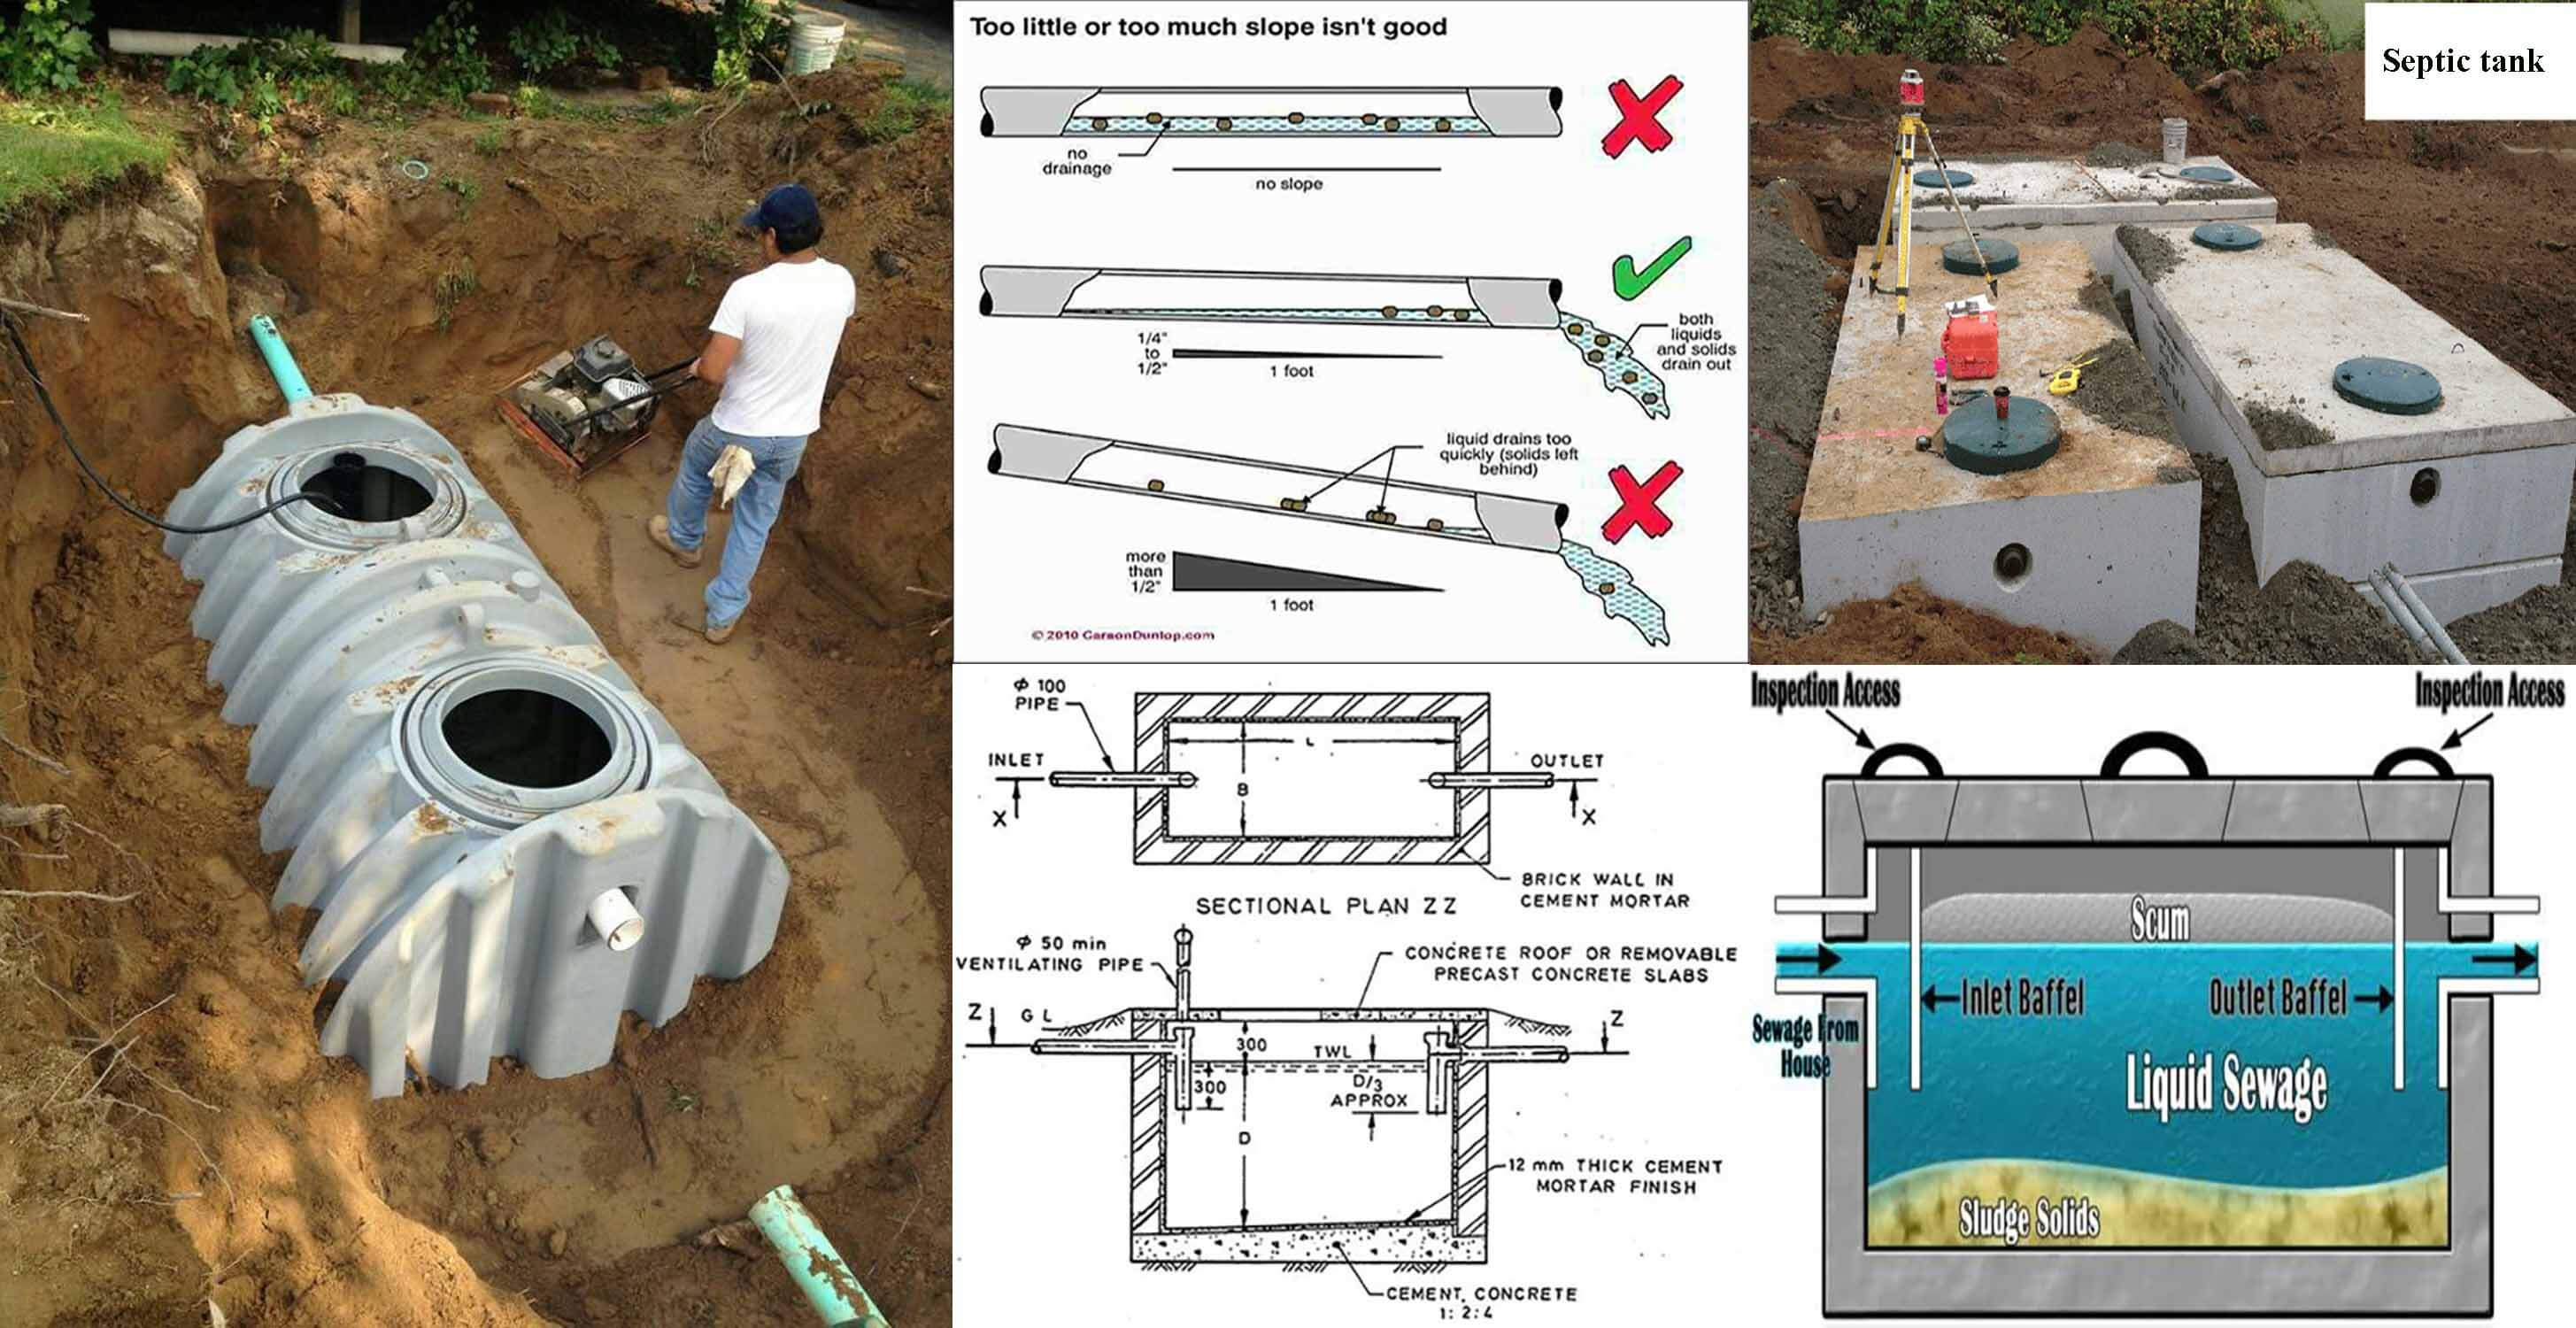 Septic Tank Components And Design Of Septic Tank Based On